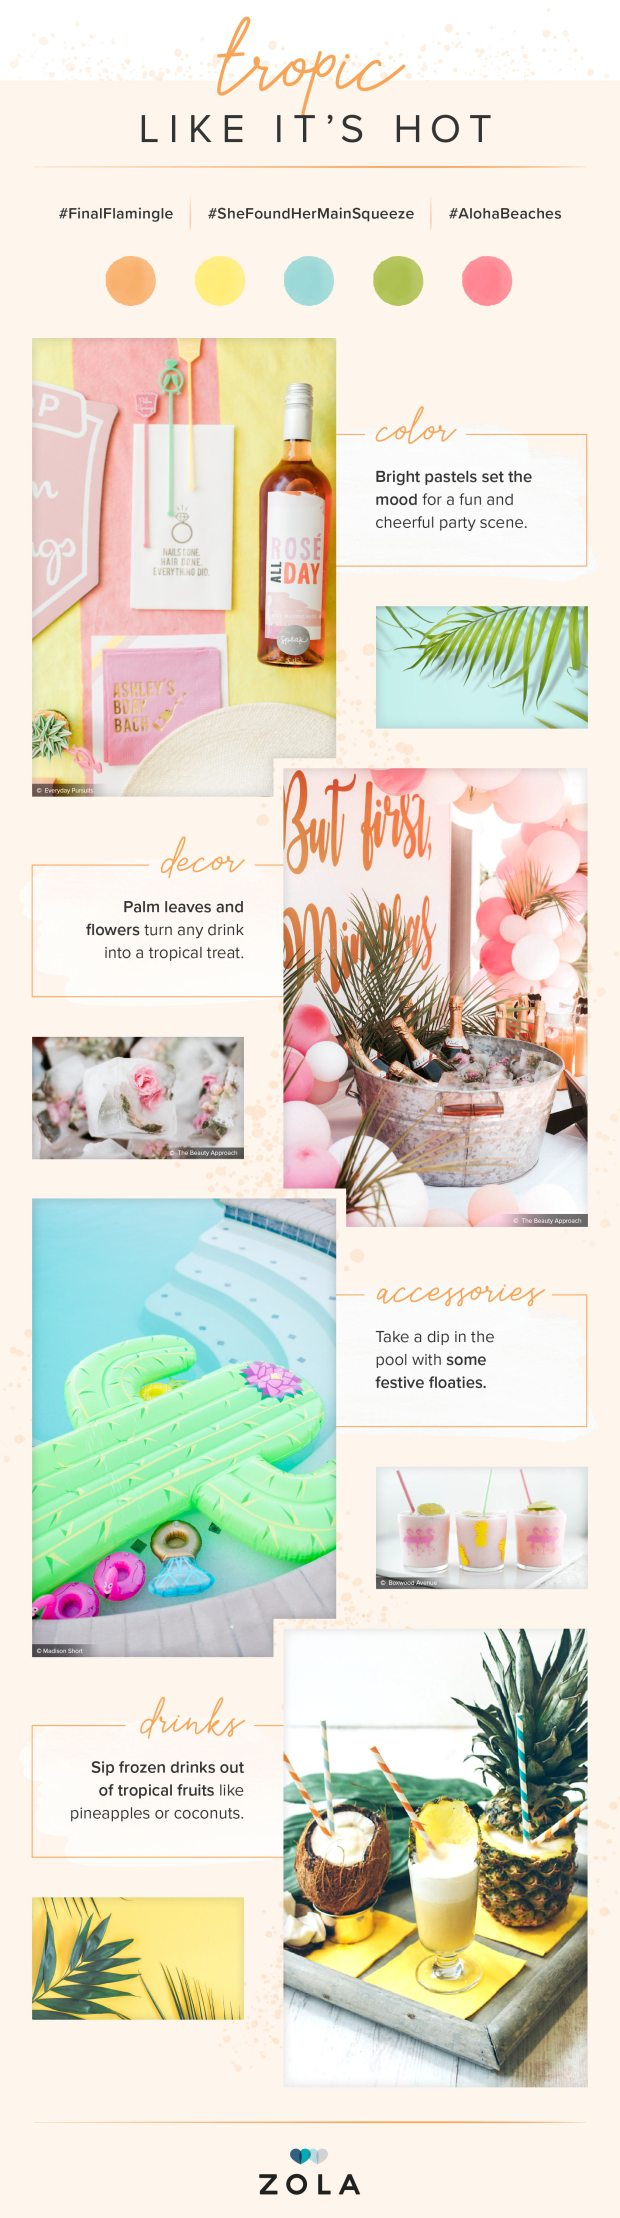 Tropical Bachelorette PartyTheme ideas mood board Tropic Like it's Hot from Zola